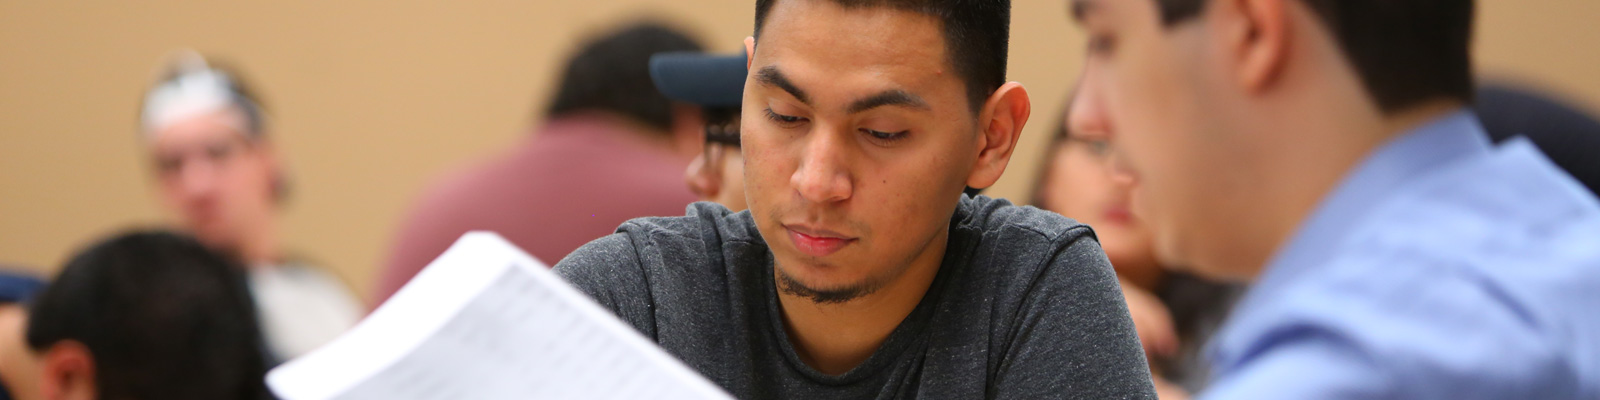 Student receiving advisement from Maricopa employee